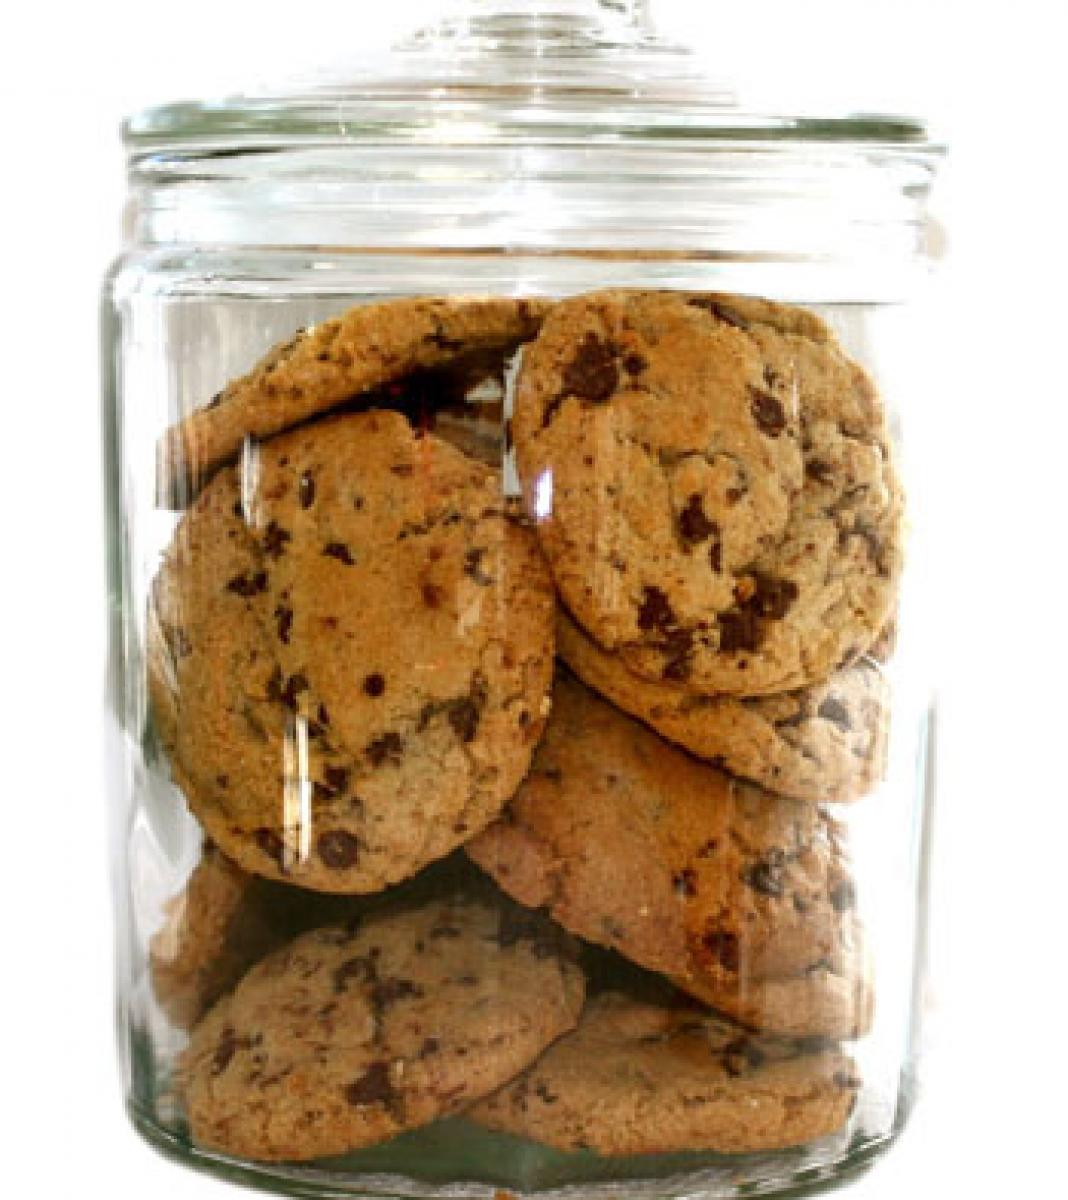 Harmful bacteria can survive in cookies for months